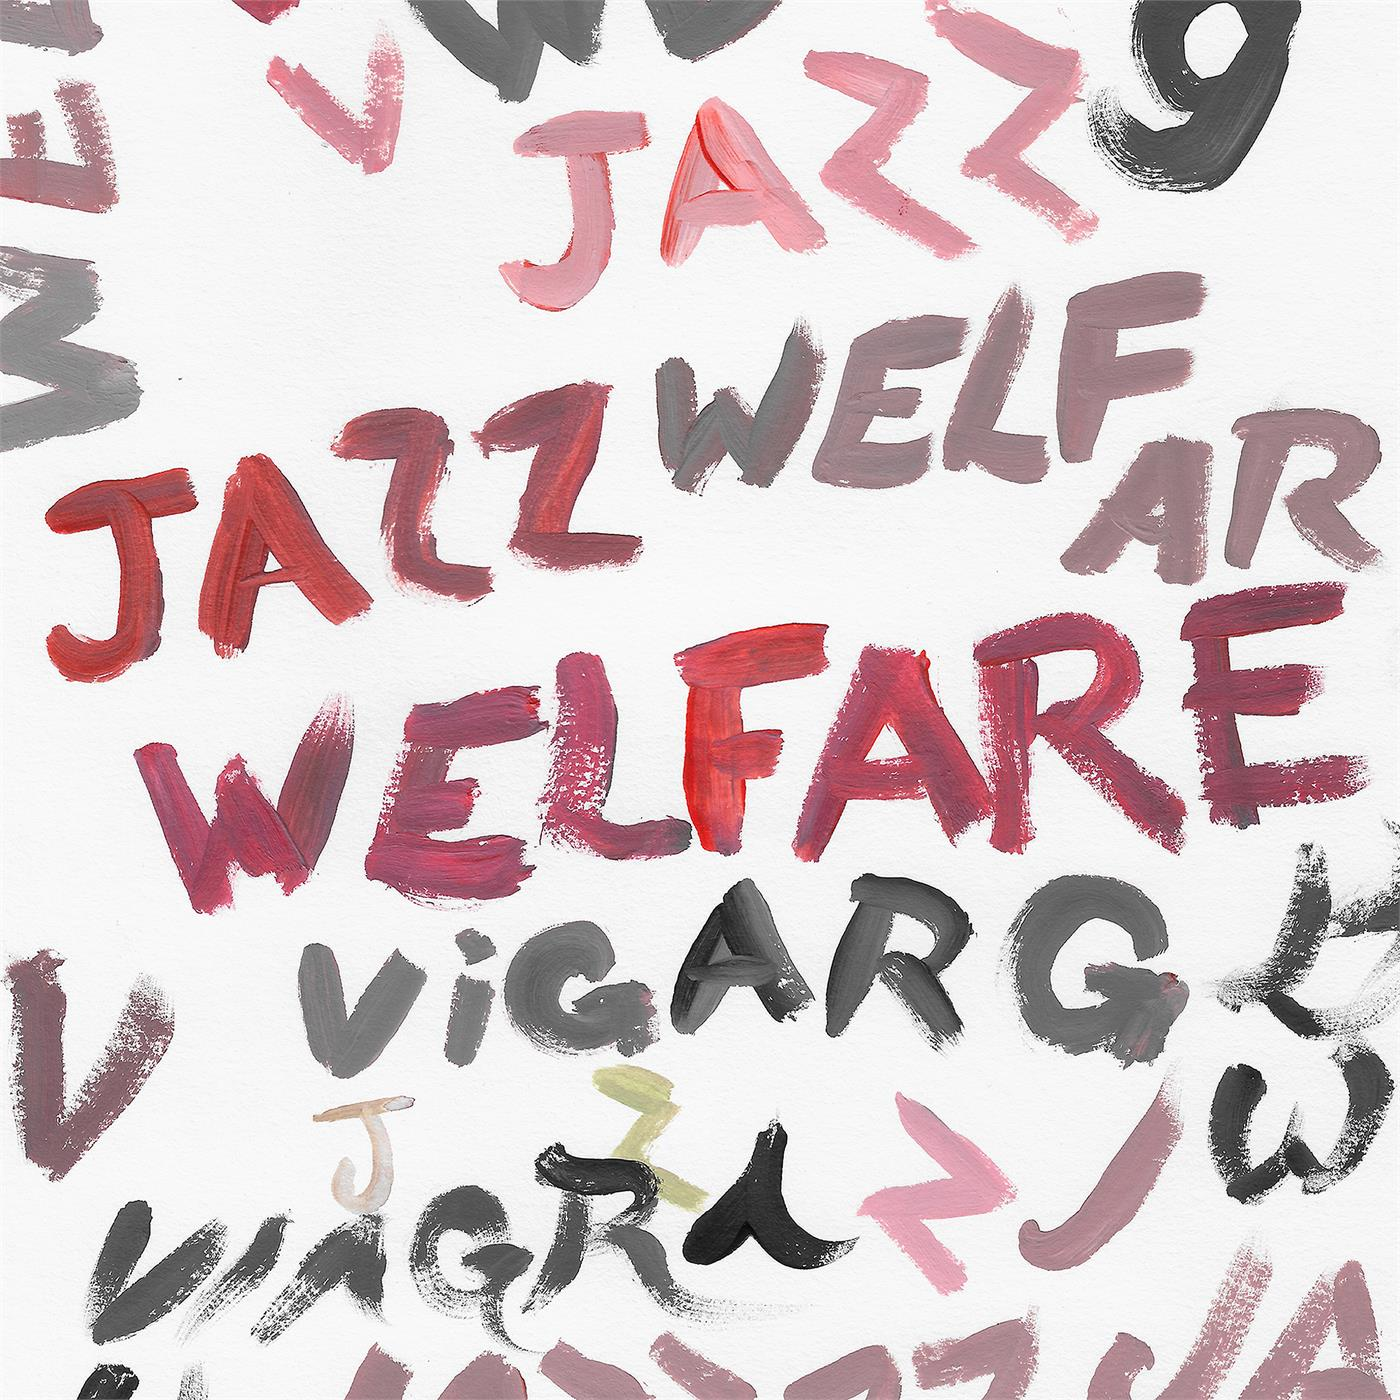 YR0123LPX Year0001  Viagra Boys Welfare Jazz - LTD (LP)